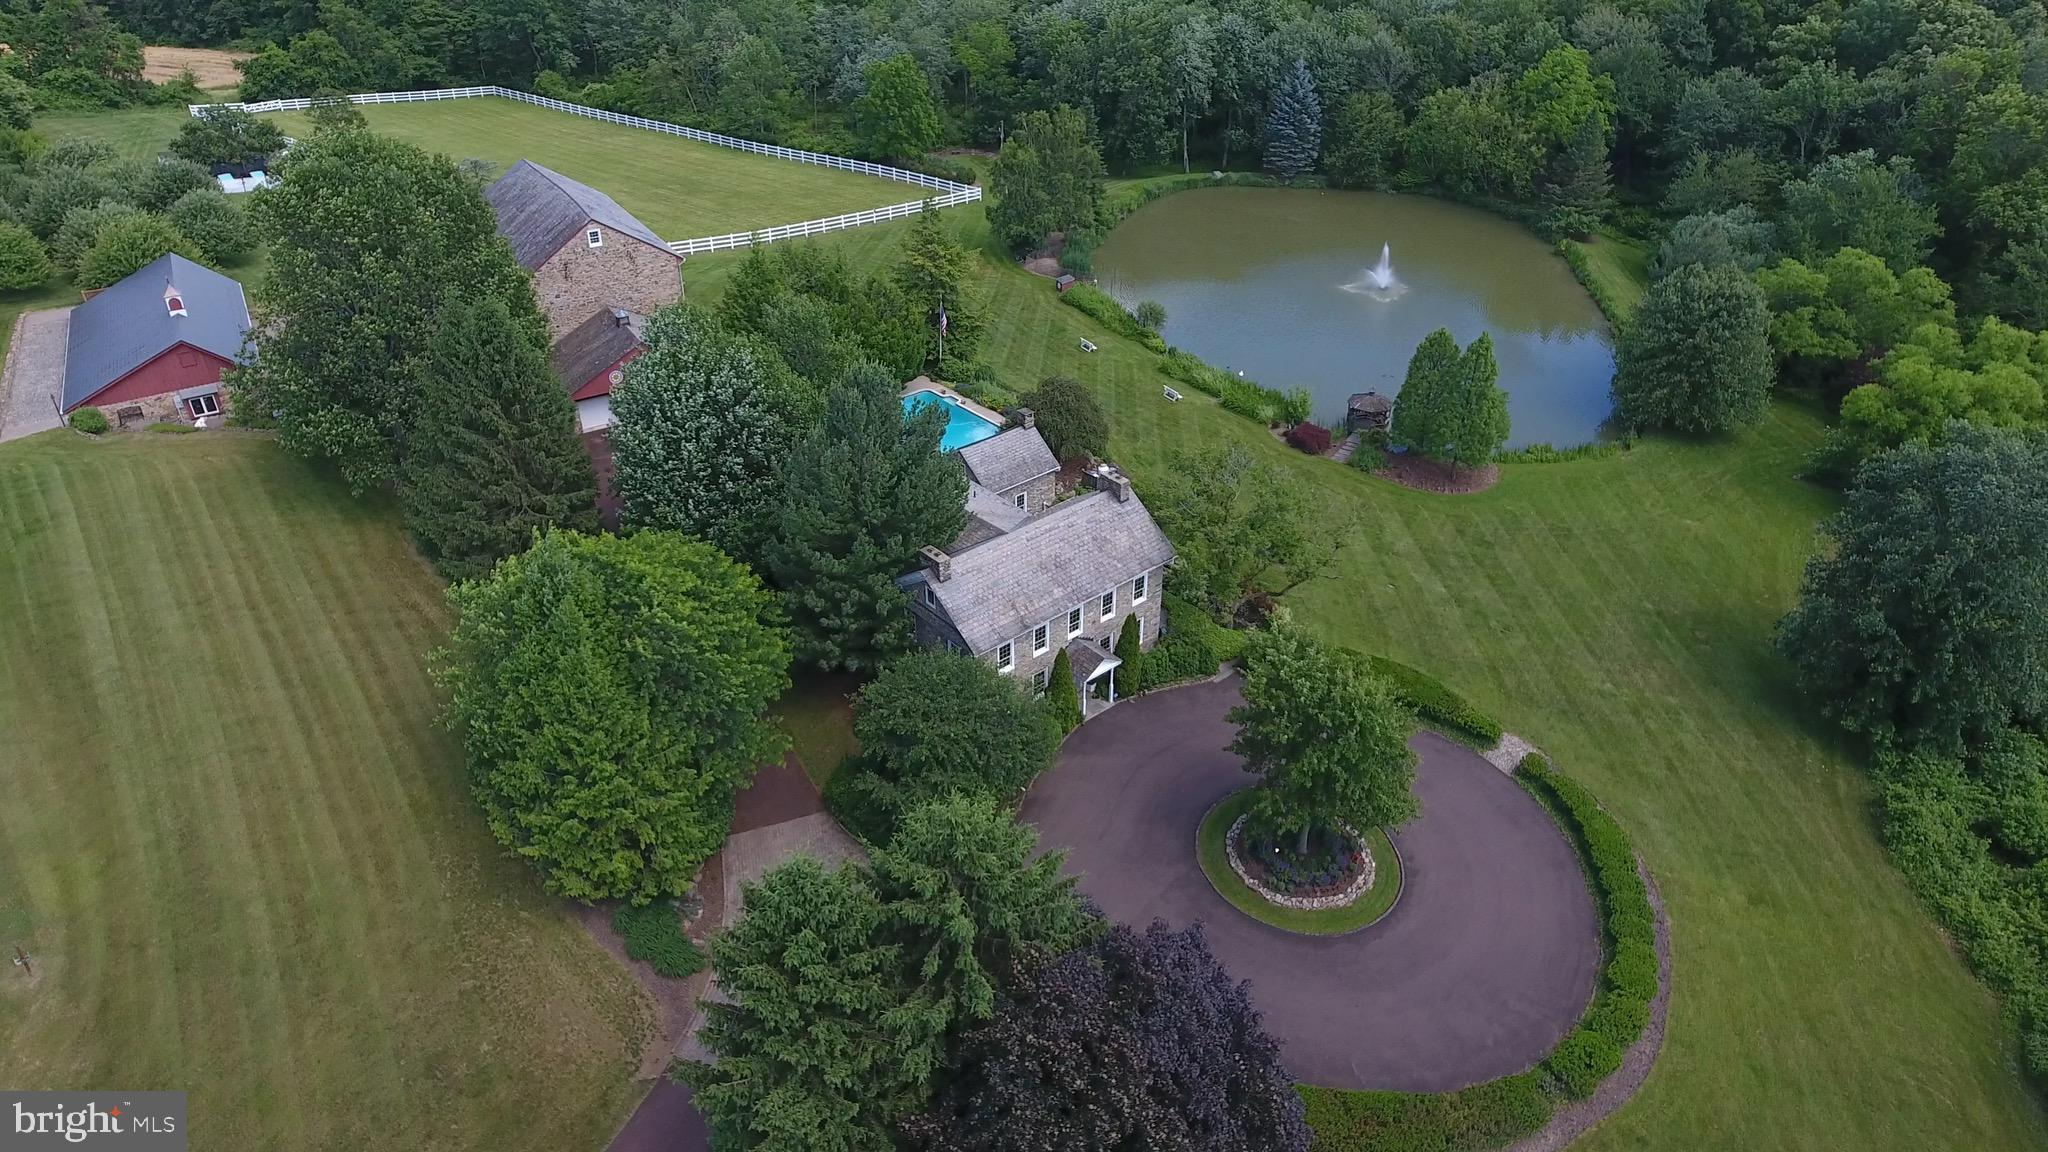 7250 SAINT PETERS ROAD, MACUNGIE, PA 18062